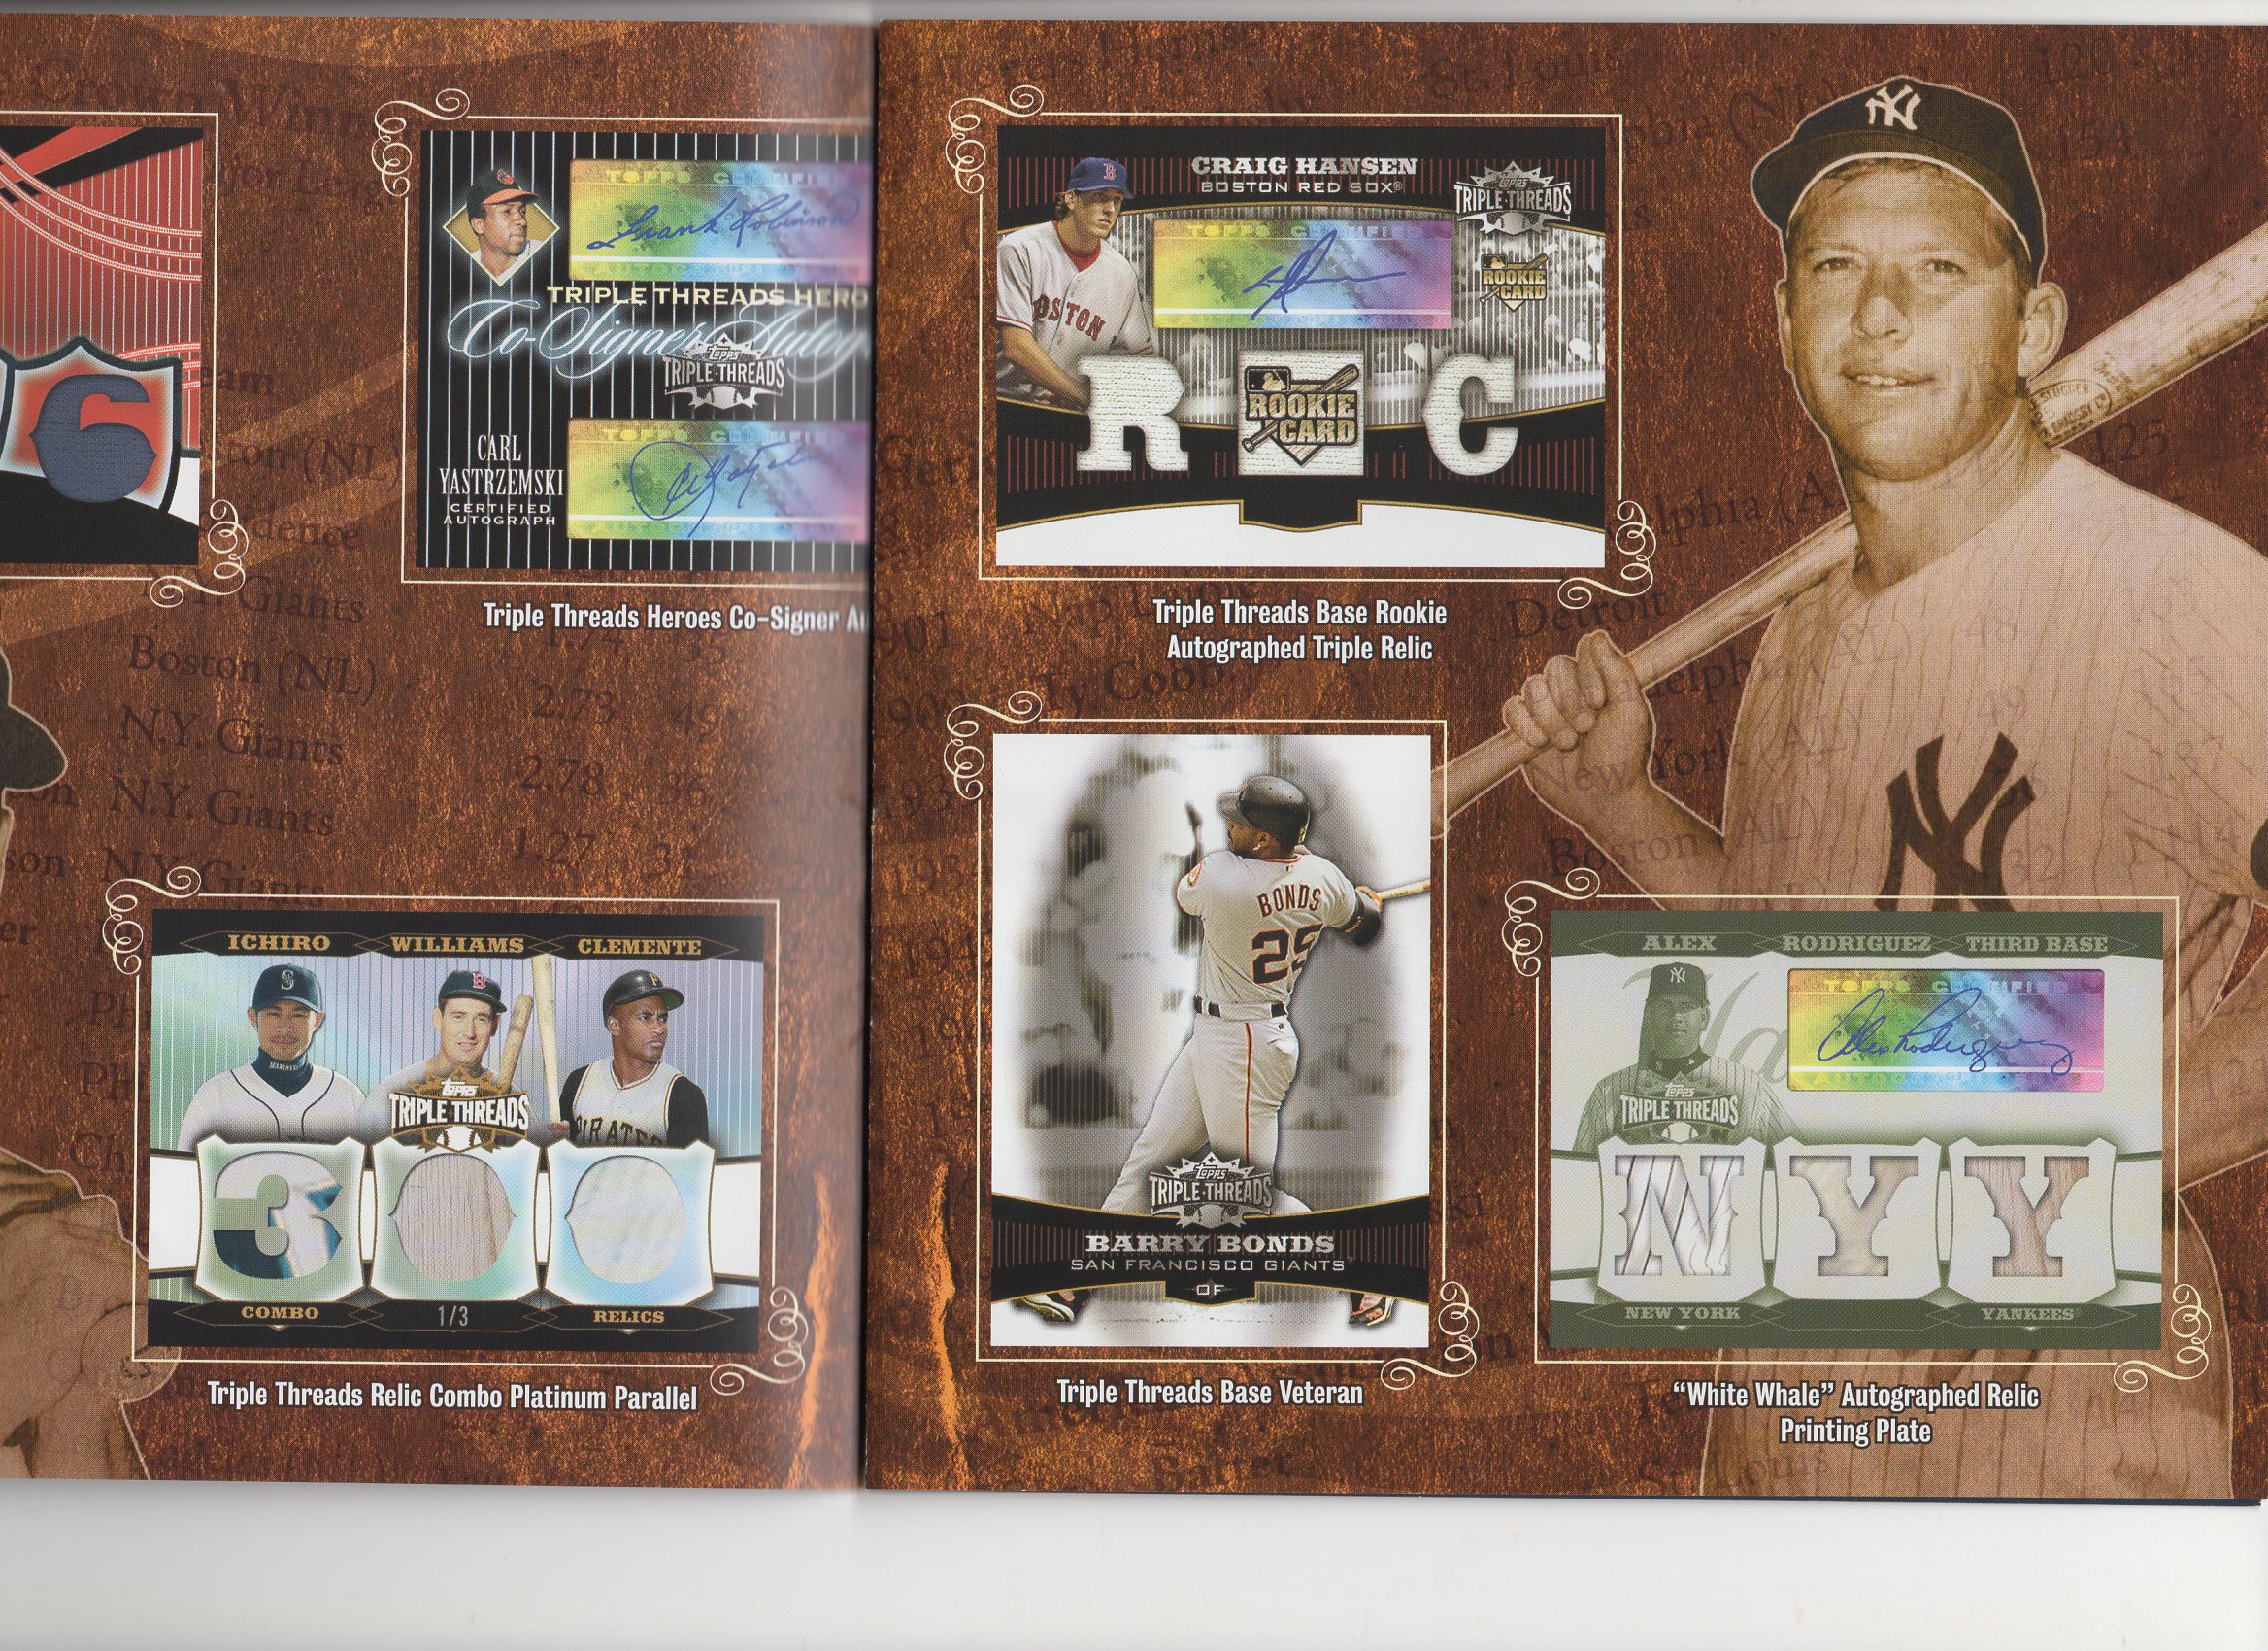 2006 topps 4 page heavy foldout